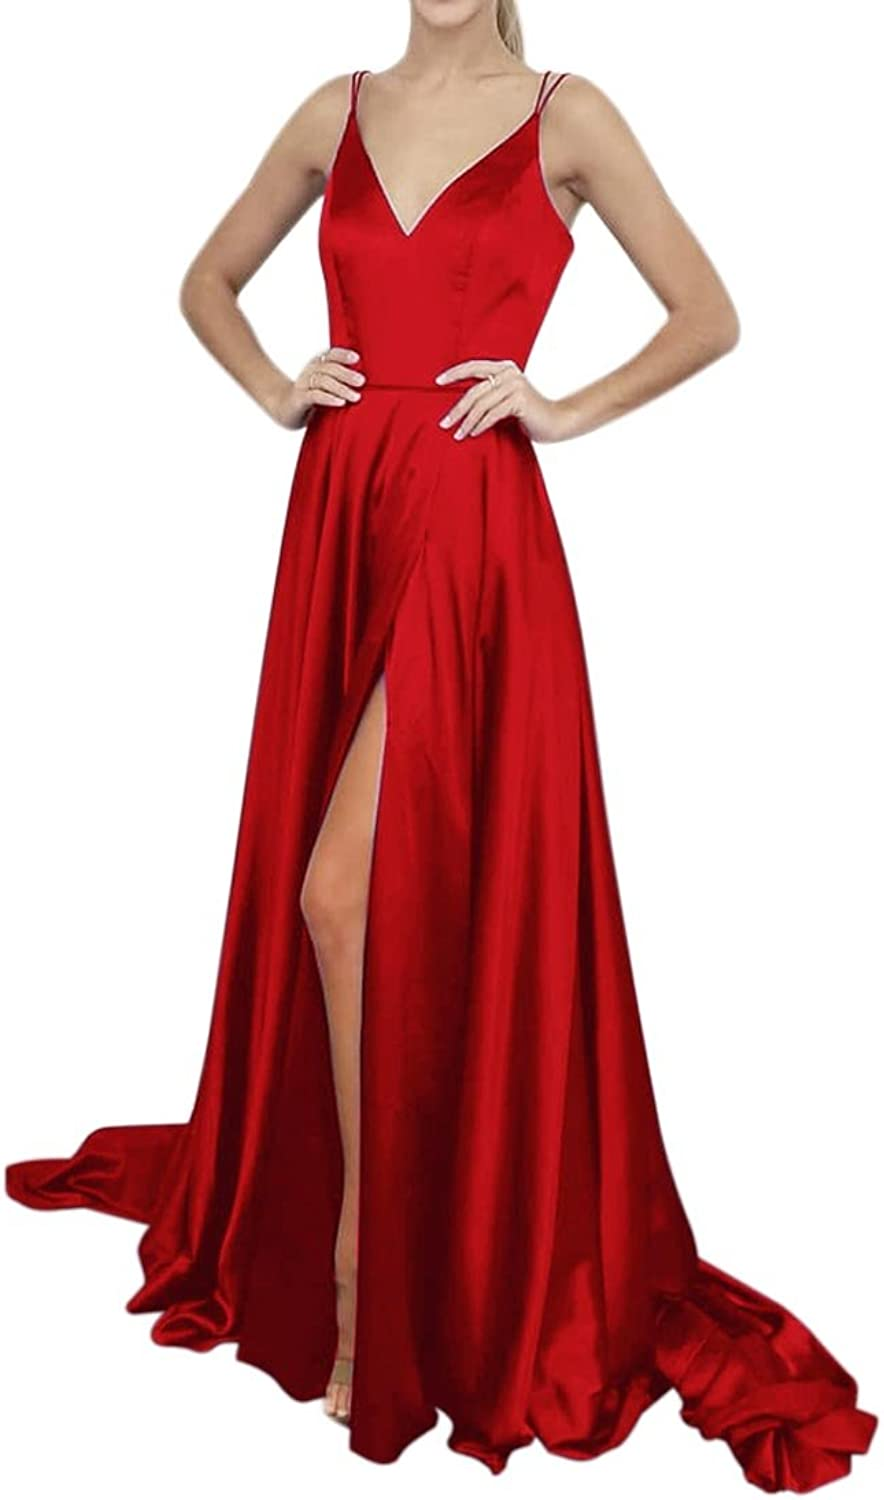 XJLY Side Split Spaghetti Straps Long VNeck Silky Cocktail Dresses Evening Dress